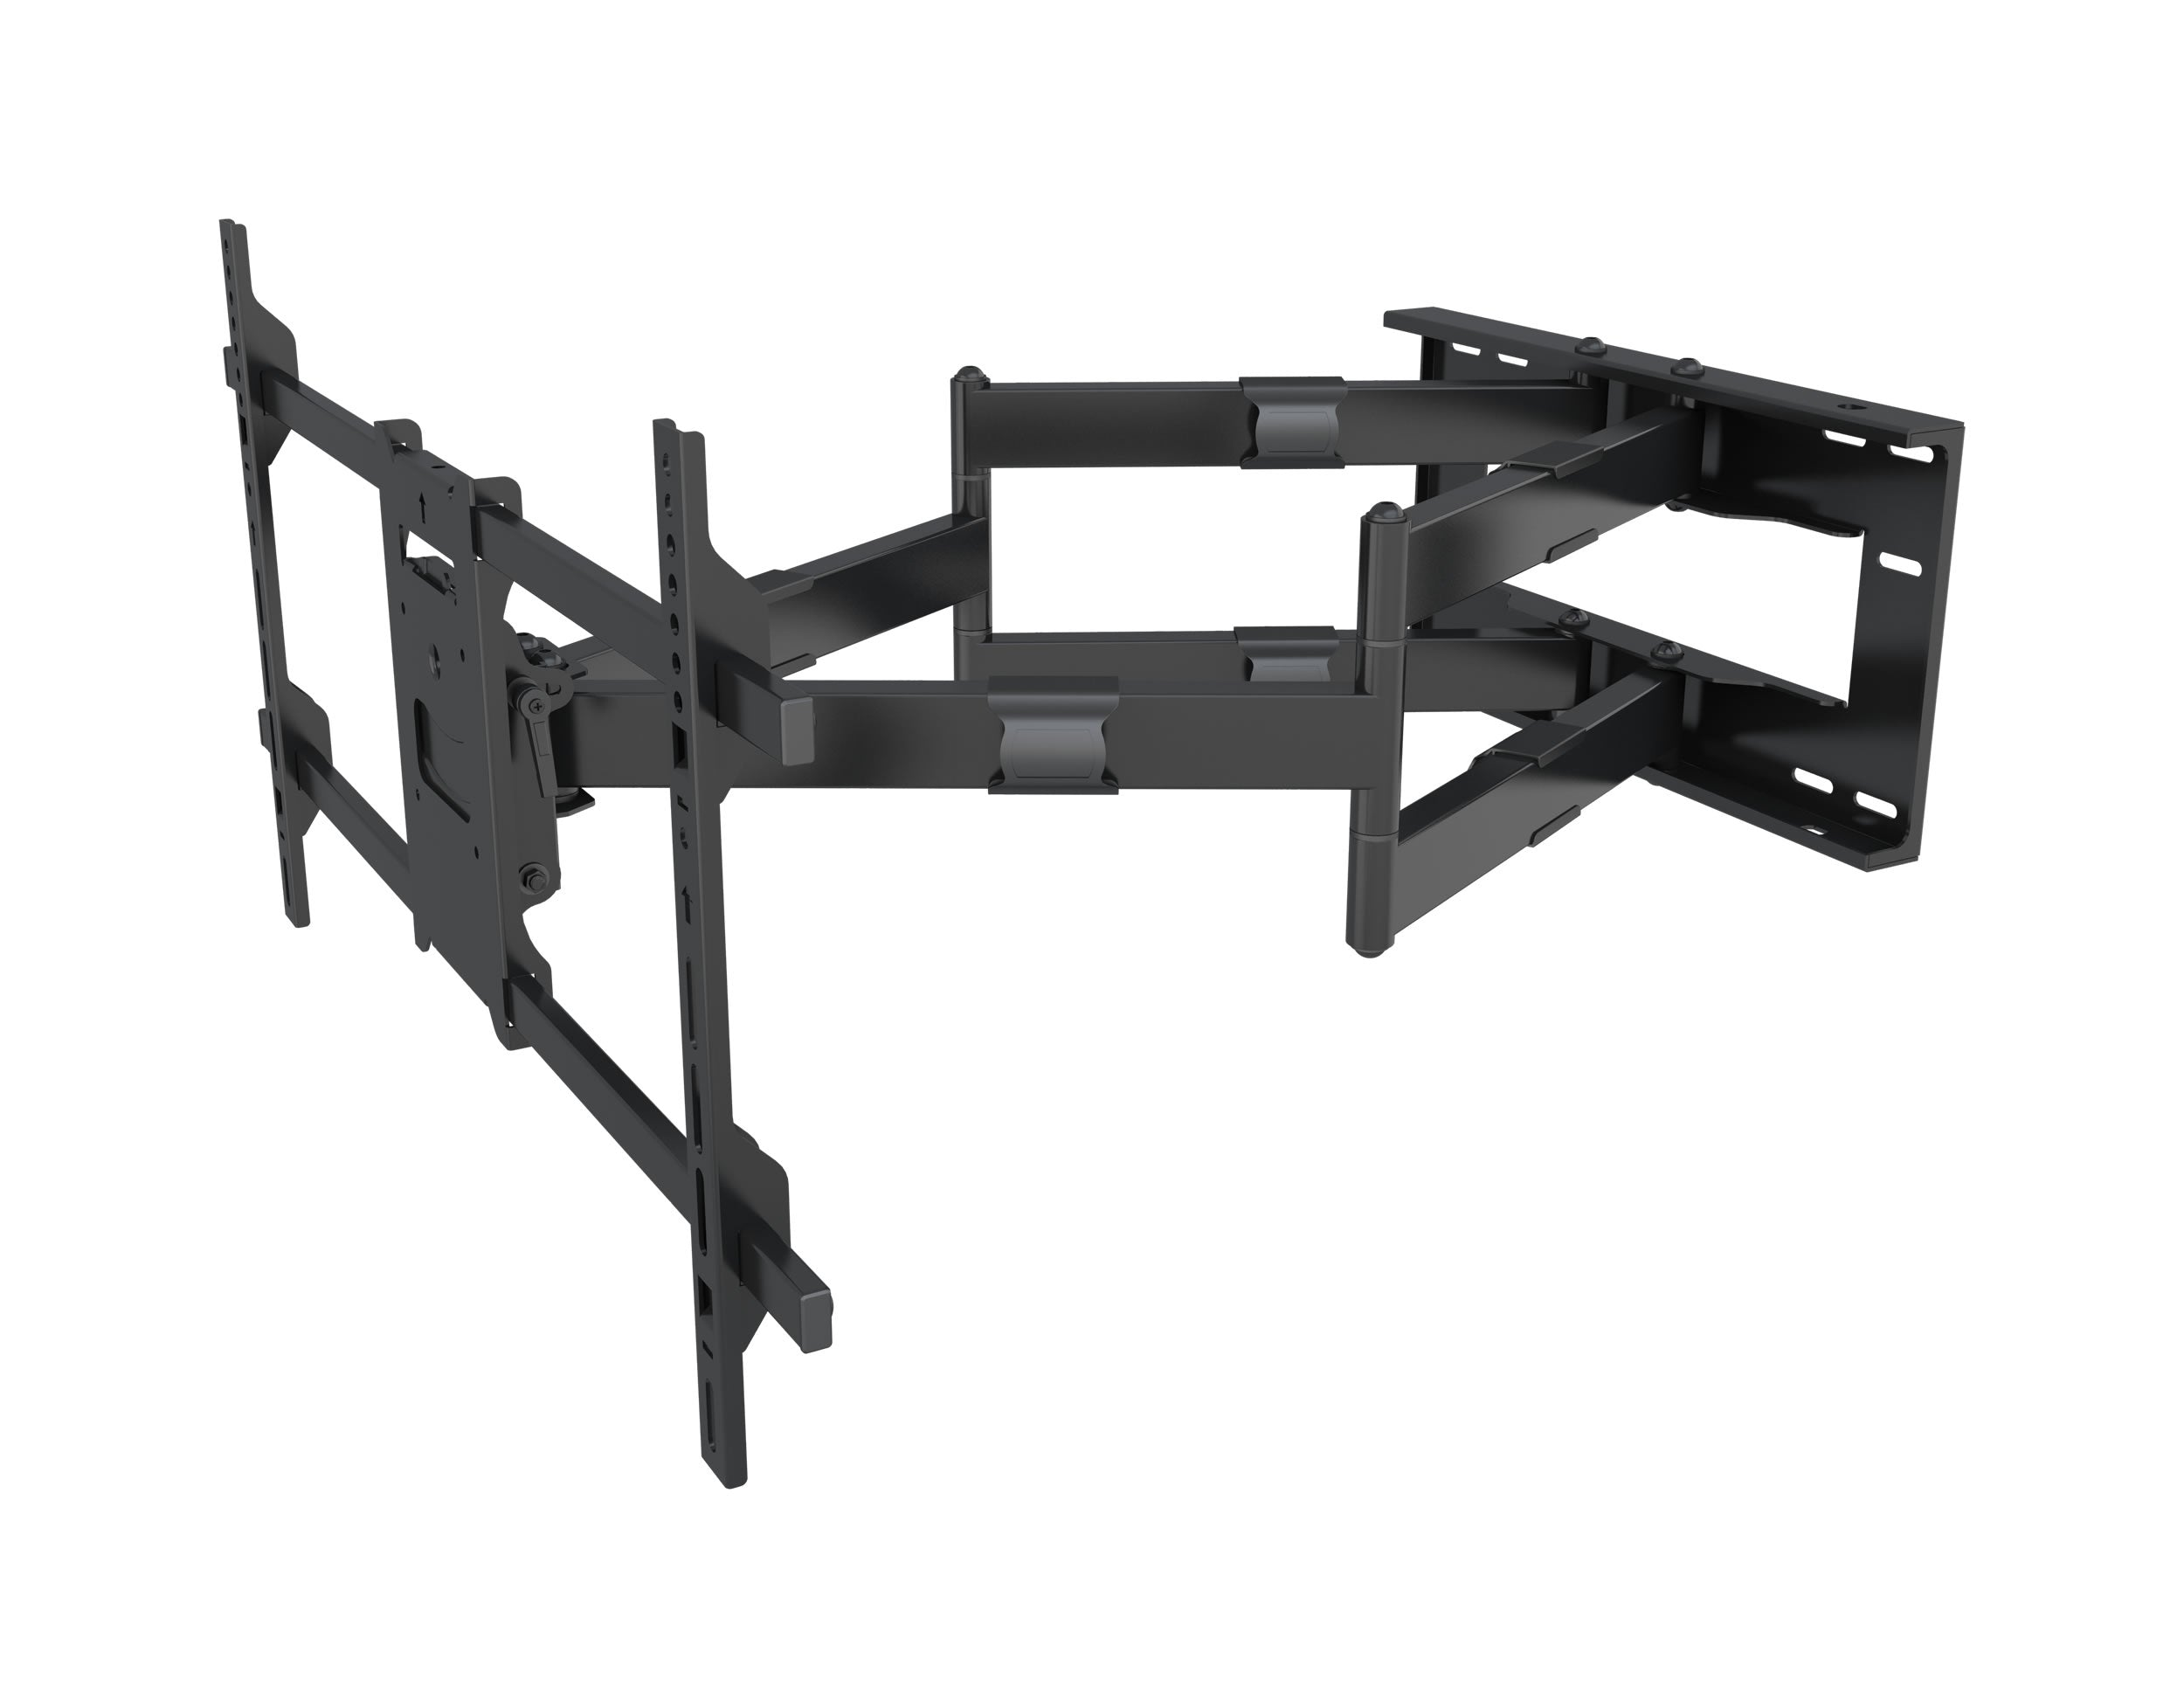 64-1152XL Full motion Flat LCD LED TV / Panels Wall Mount Bracket for 42-90 inches Screens